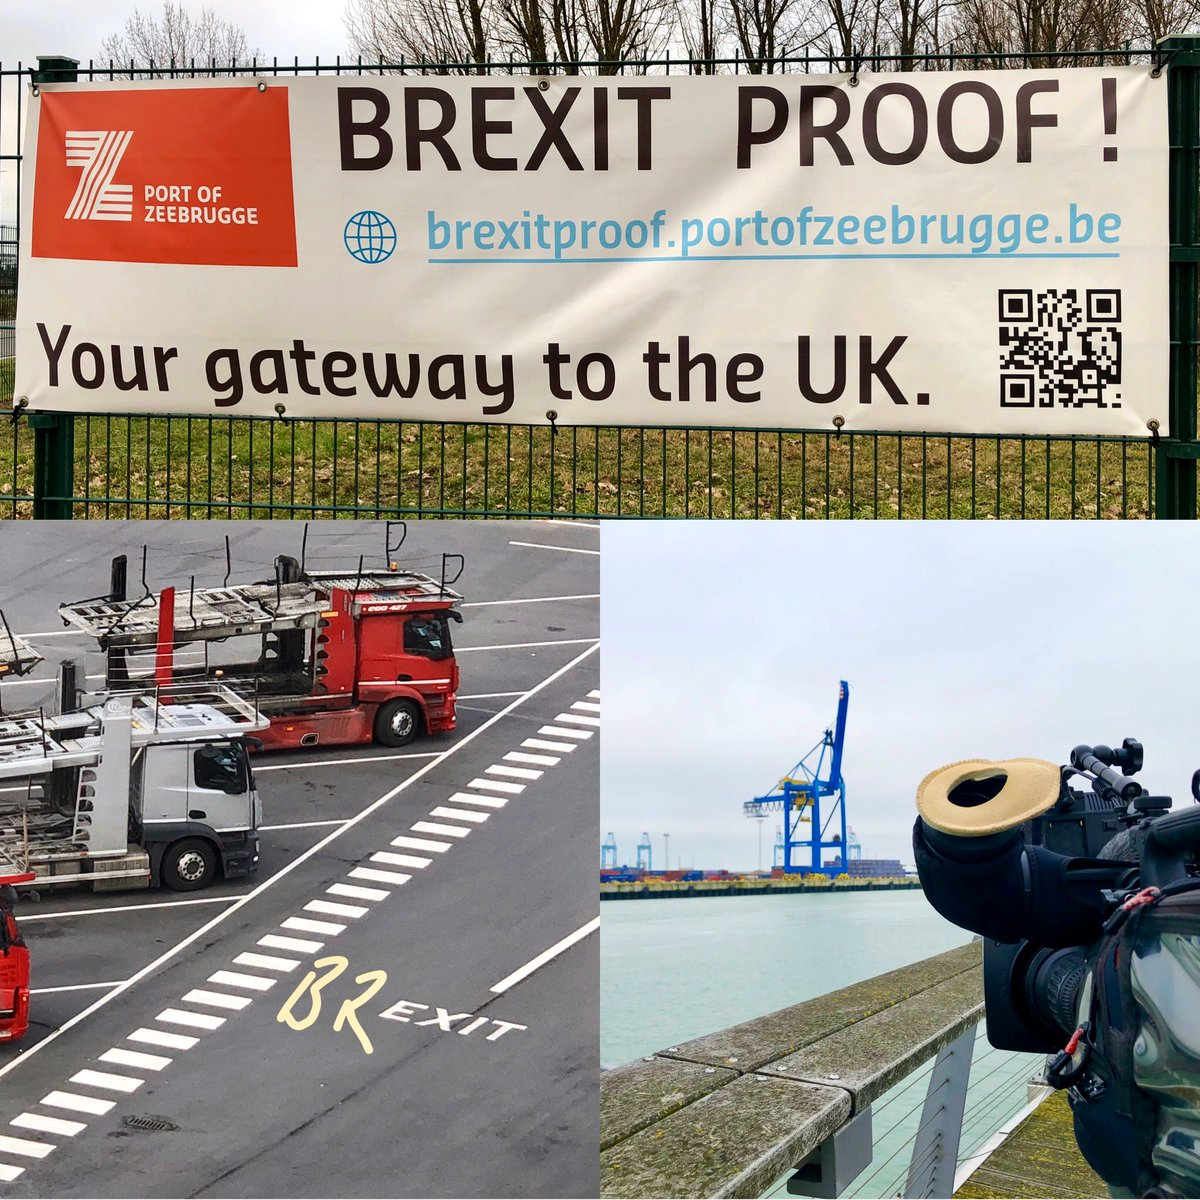 test Twitter Media - On @itvcalendar tonight at 6, we've been filming with @JonnyBrownYorks for a special report and Live from the port of #Zeebrugge on how #Brexit will effect their trade with the UK. Via @LiveU https://t.co/YCNq7lOpJI